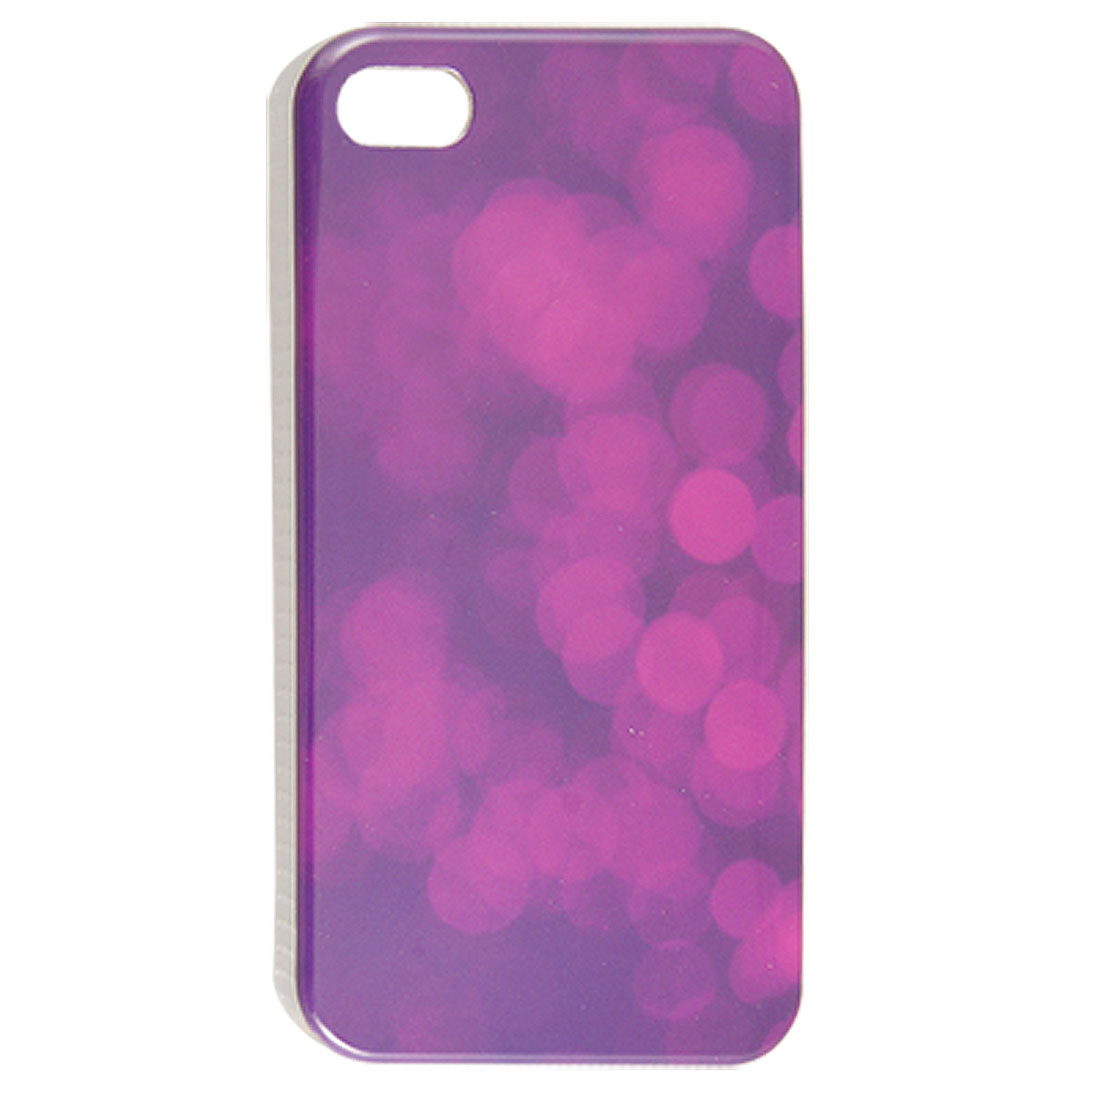 Defocused Light Abstract Pattern IMD Plastic Cover for iPhone 4 4G 4S